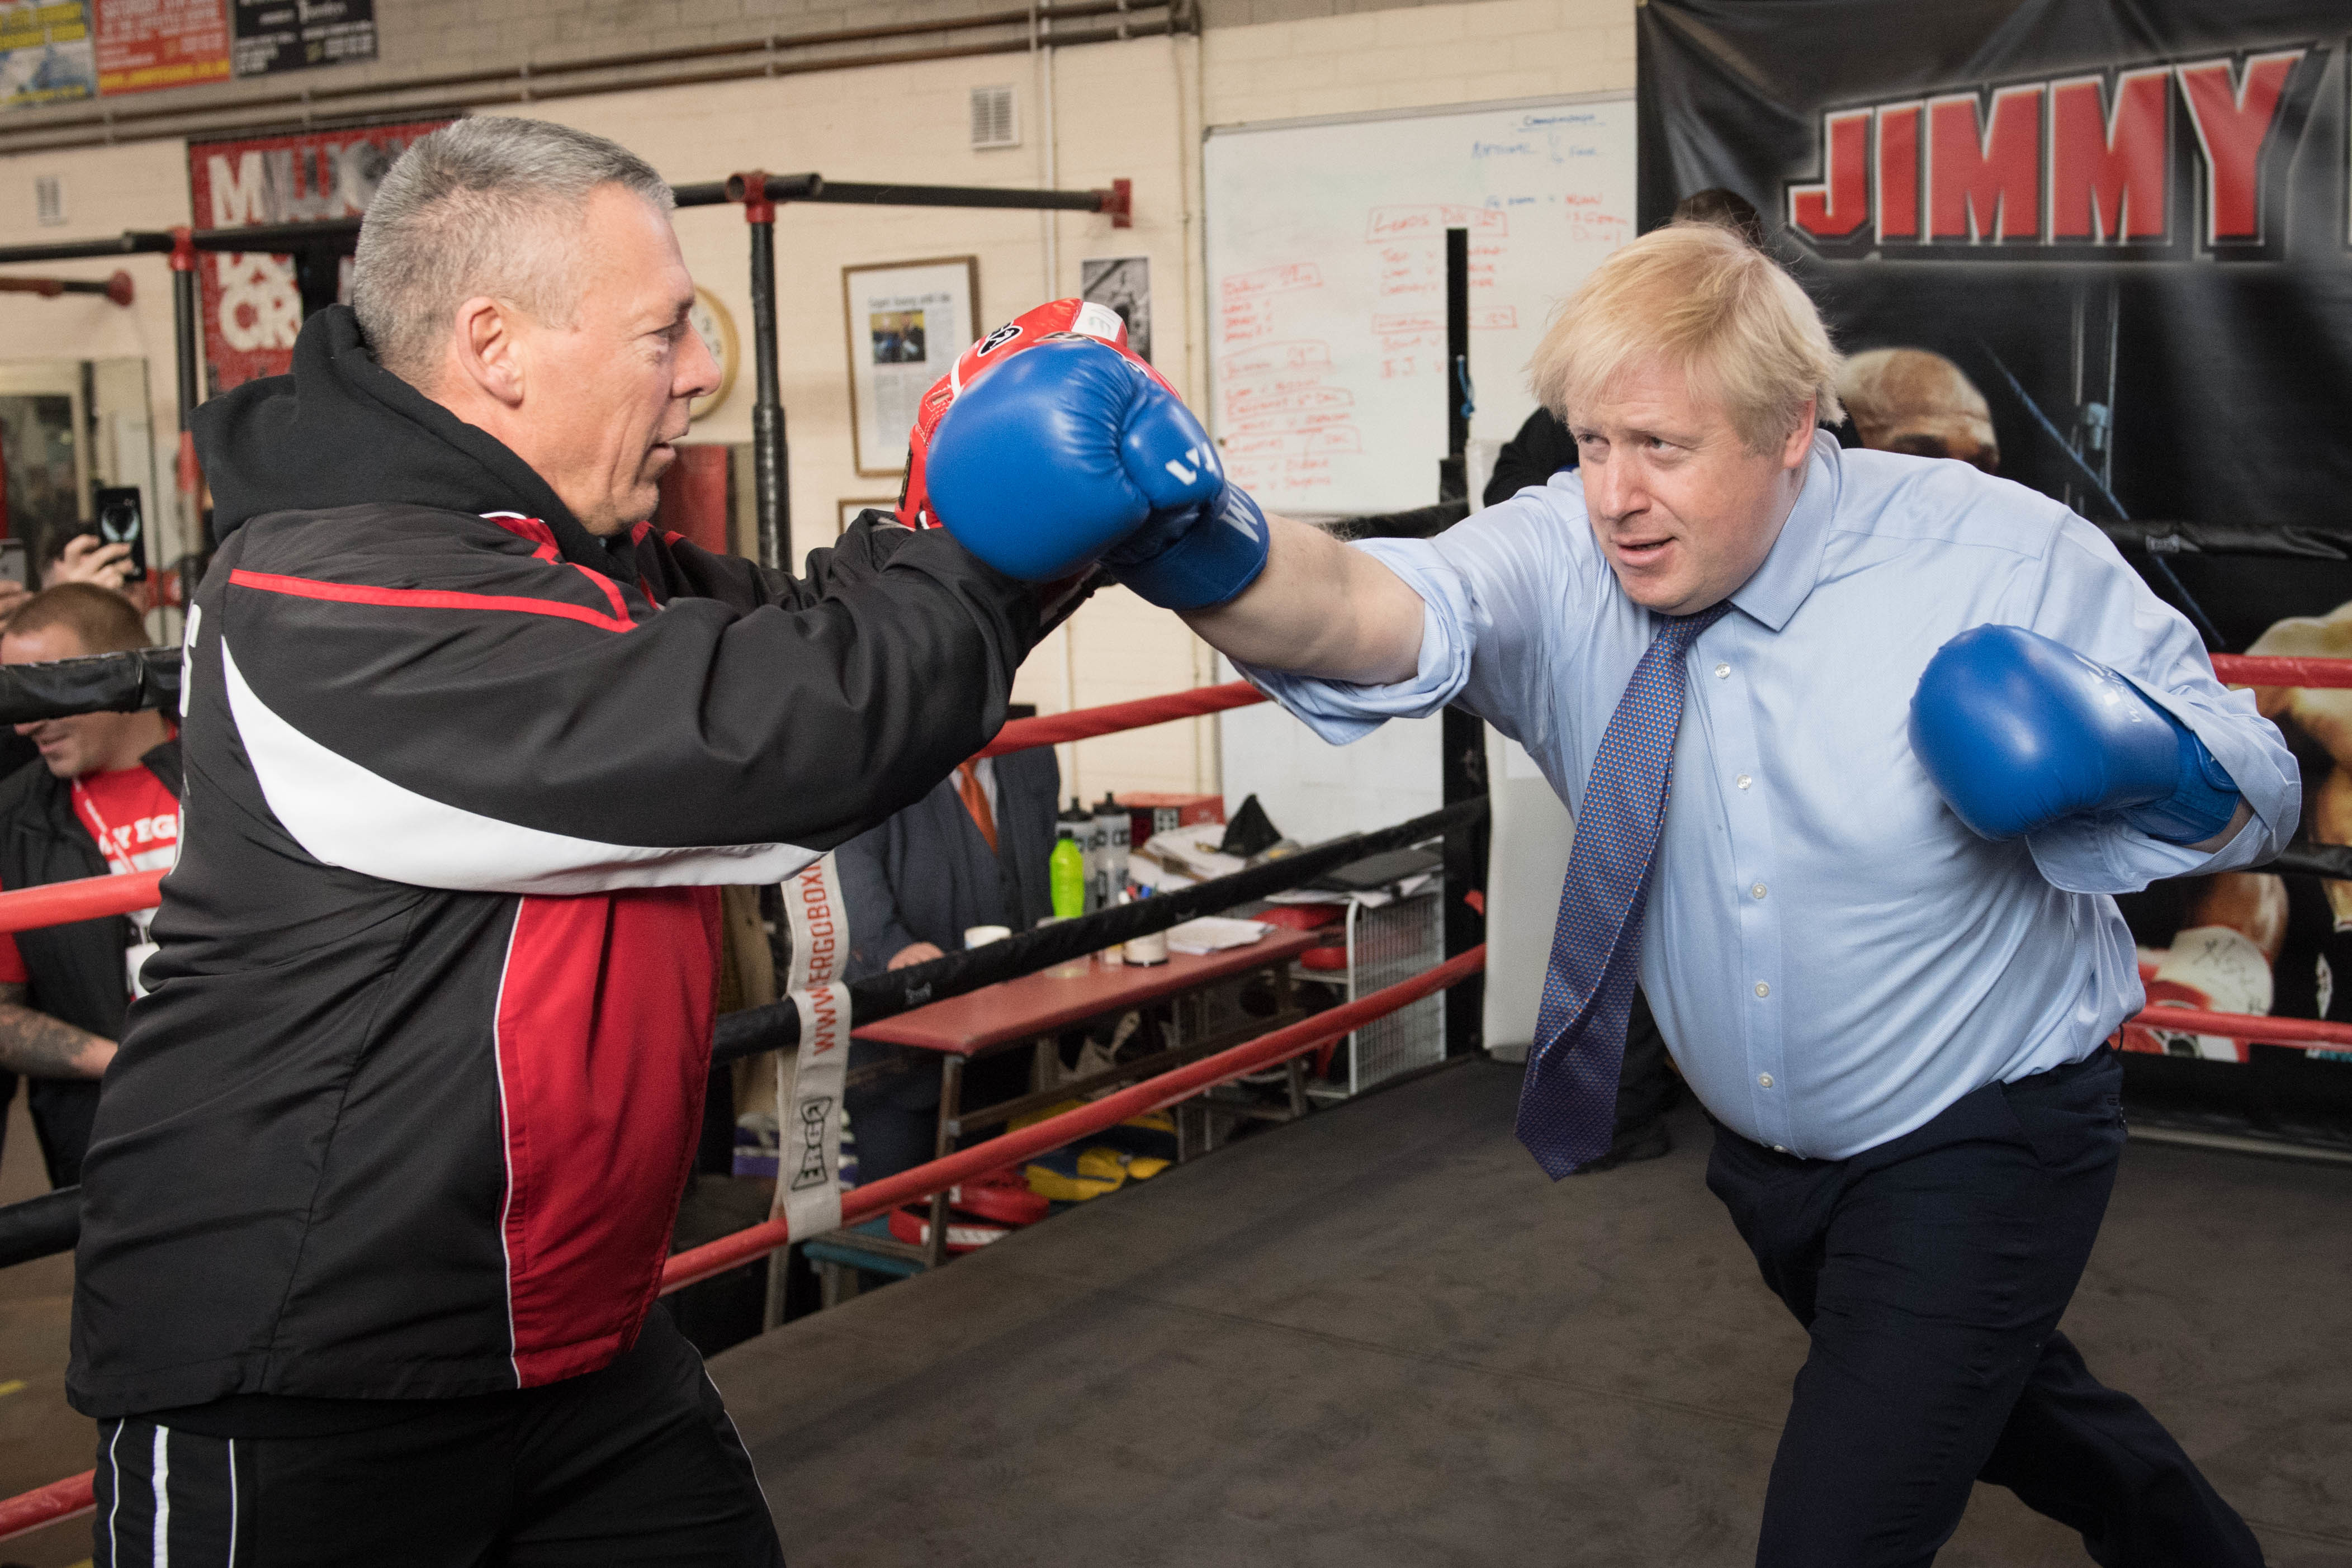 Prime Minister Boris Johnson spars with boxing coach, Steve Egan during a visit to Jimmy Egan's Boxing Academy at Wythenshawe, while on the campaign trail ahead of the General Election. PA Photo. Picture date: Tuesday November 19, 2019. See PA story POLITICS Election. Photo credit should read: Stefan Rousseau/PA Wire